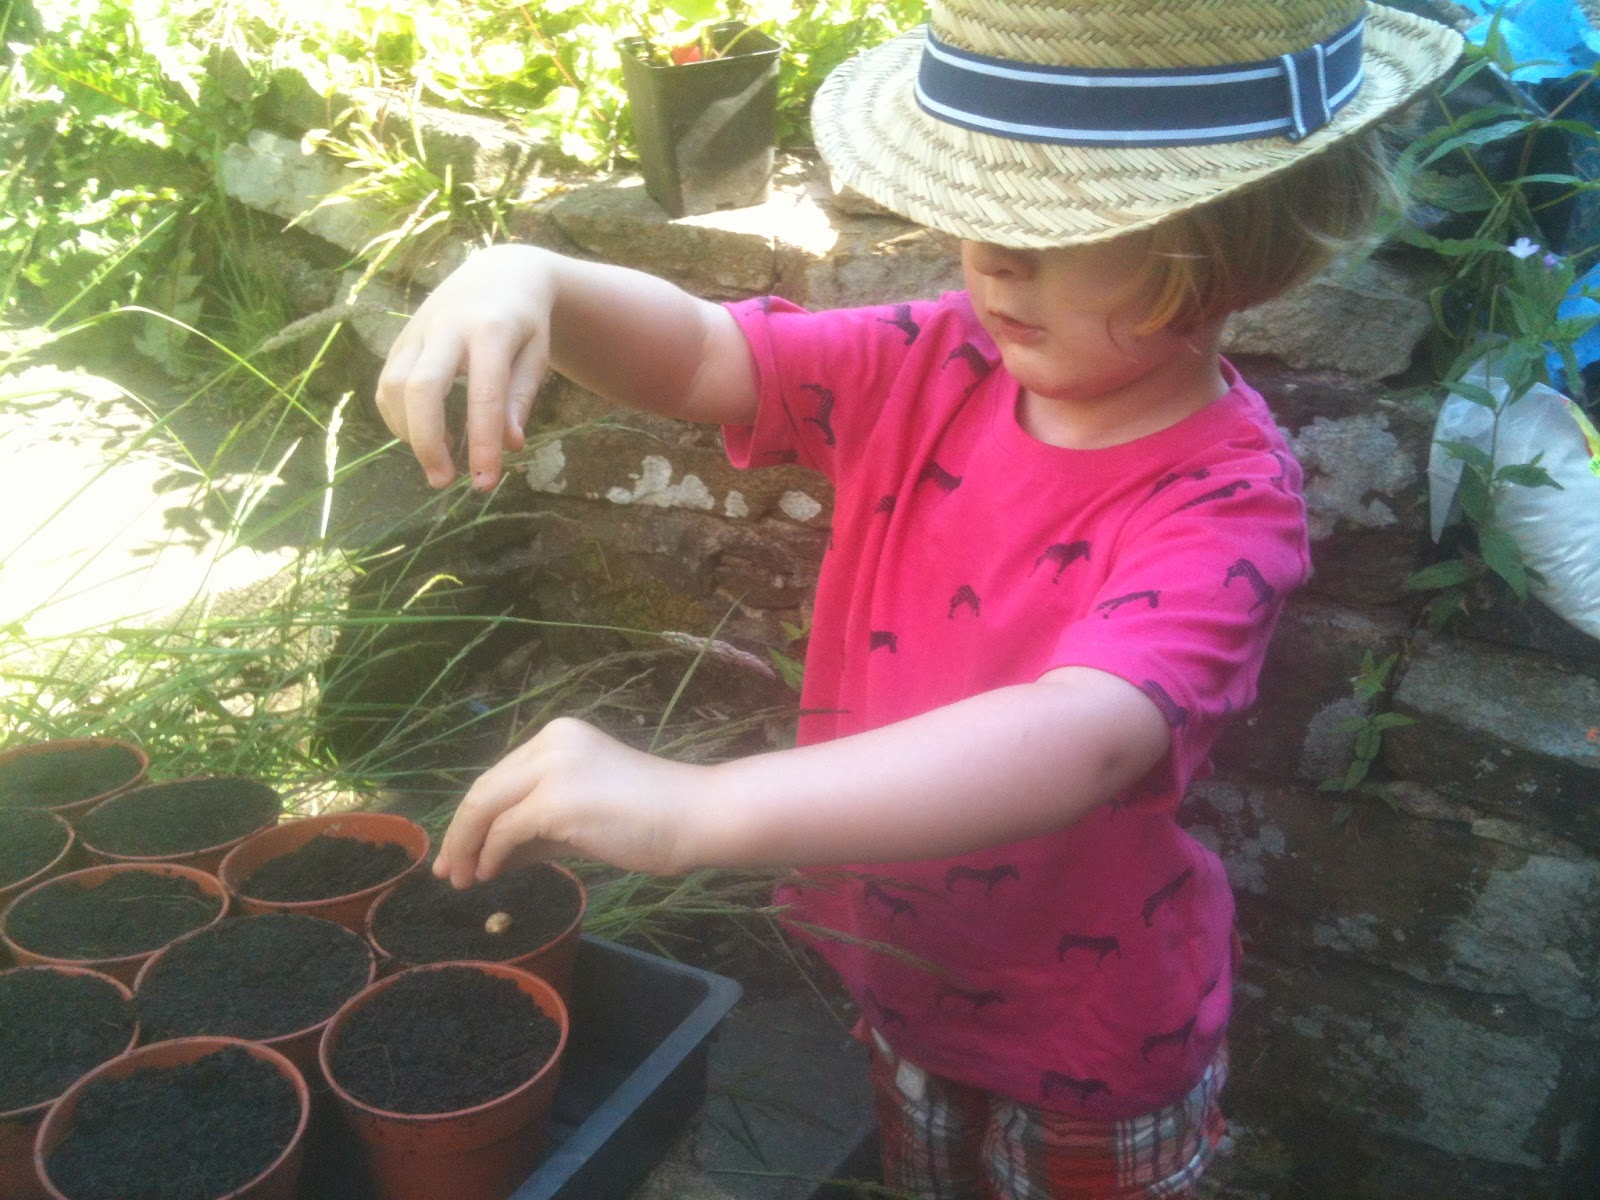 Sowing large seeds with small children, they're easier to handle